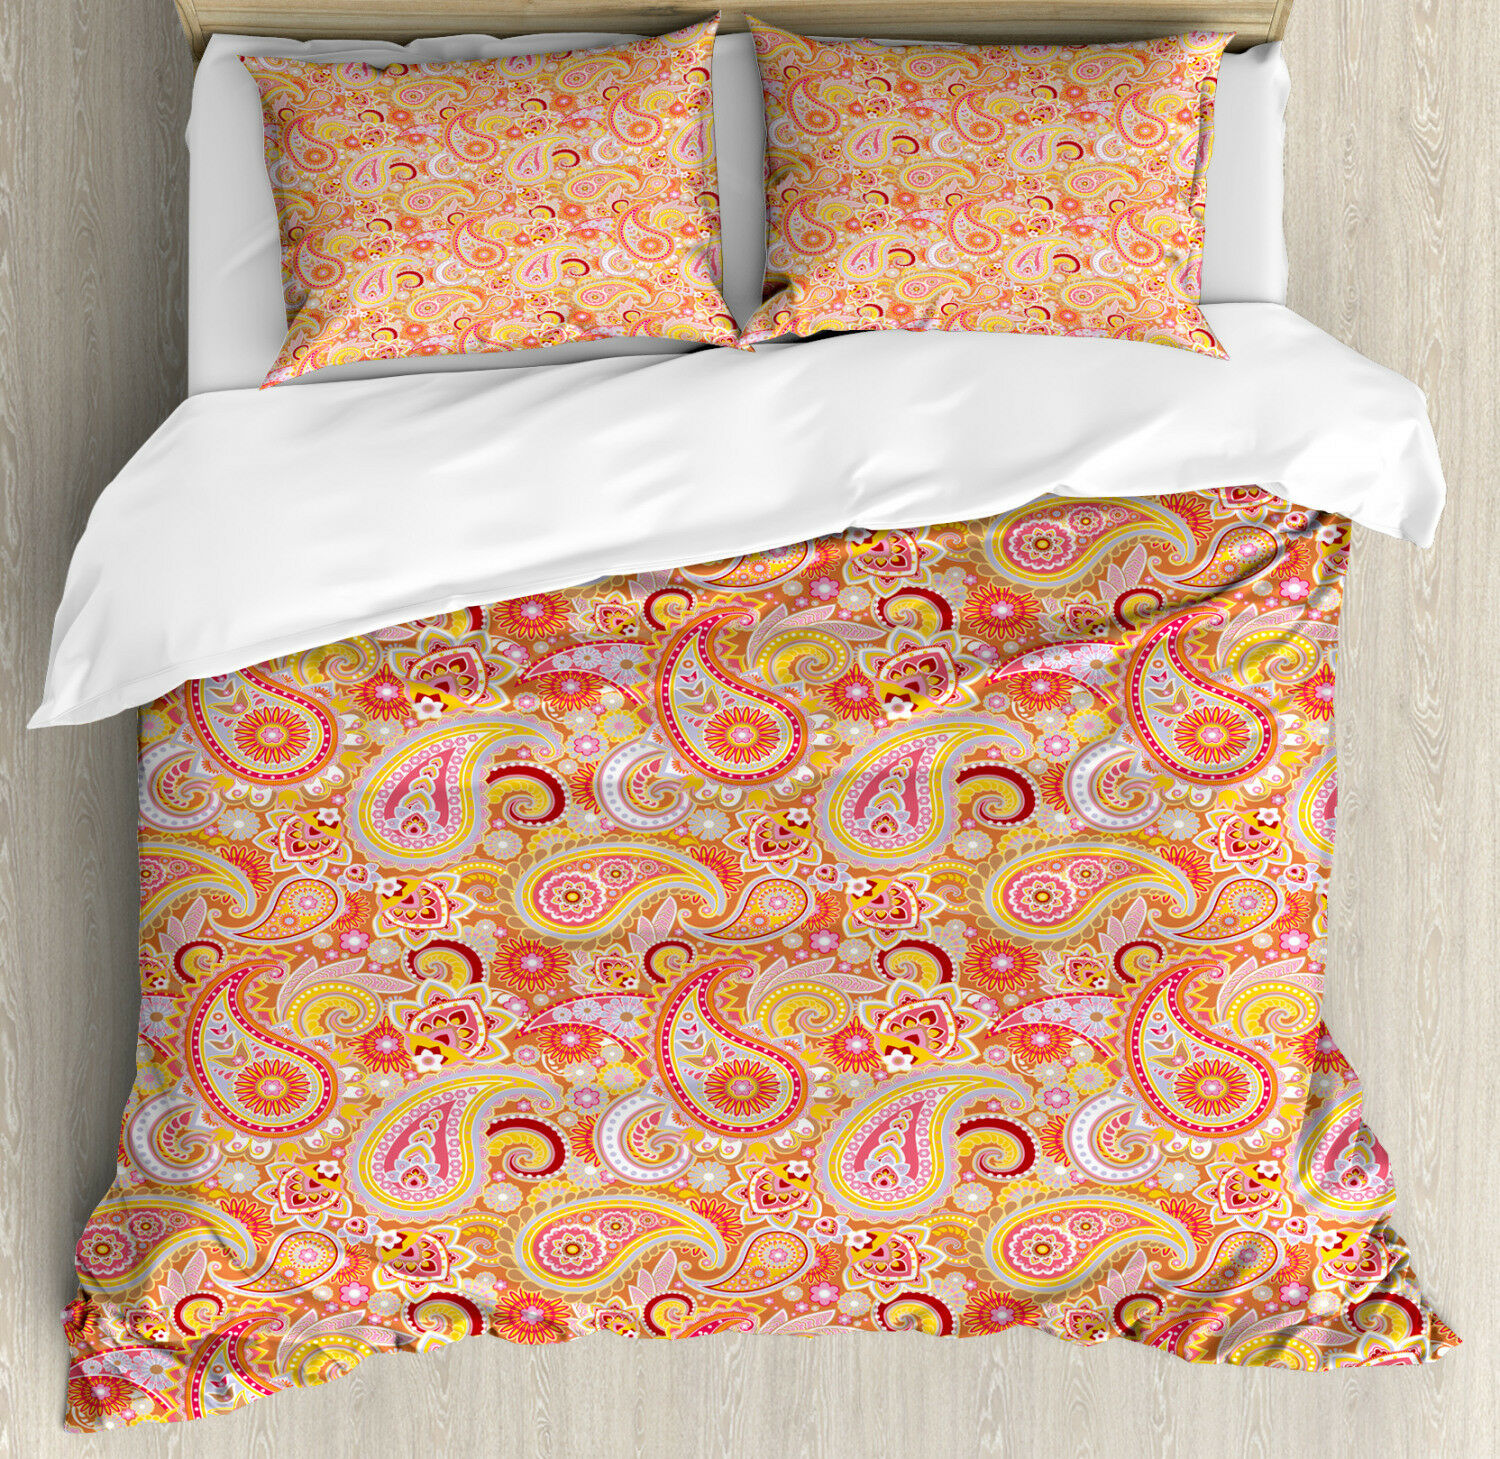 orange Duvet Cover Set with Pillow Shams Asian Paisley Print